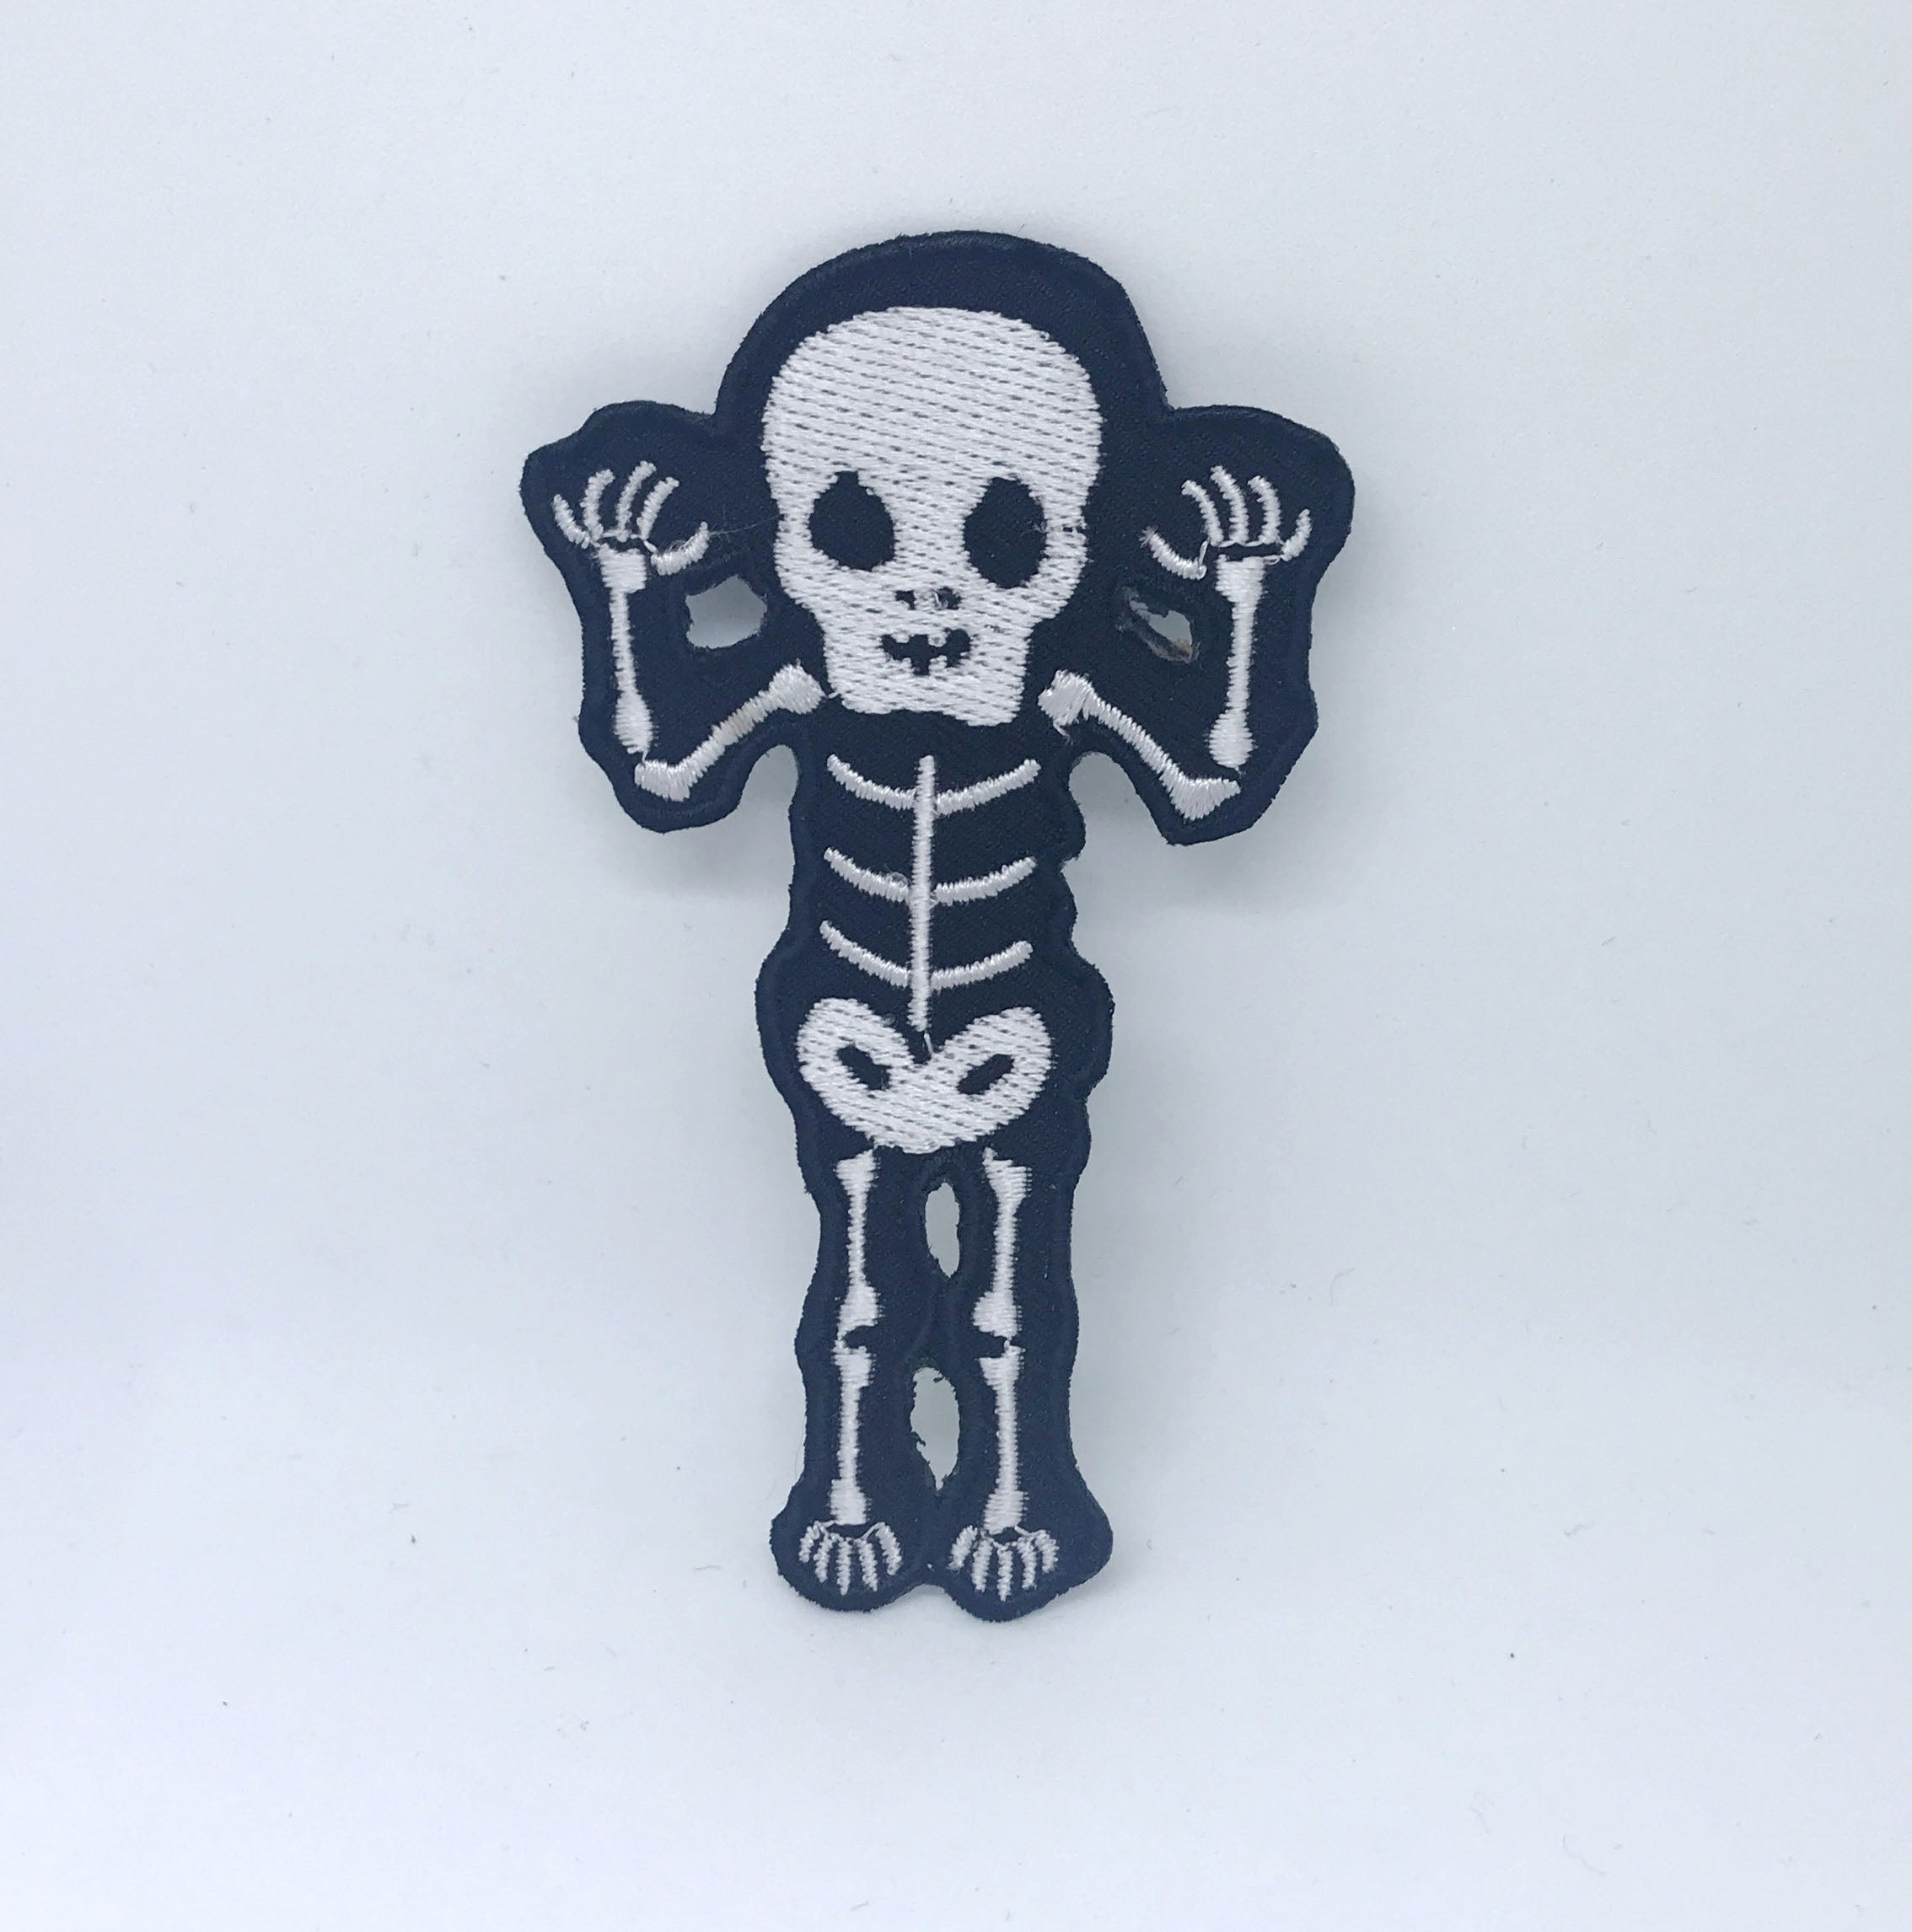 CUTE Waving Skeleton Biker Rock Goth Emo BOW Iron On Embroidered Patch - White